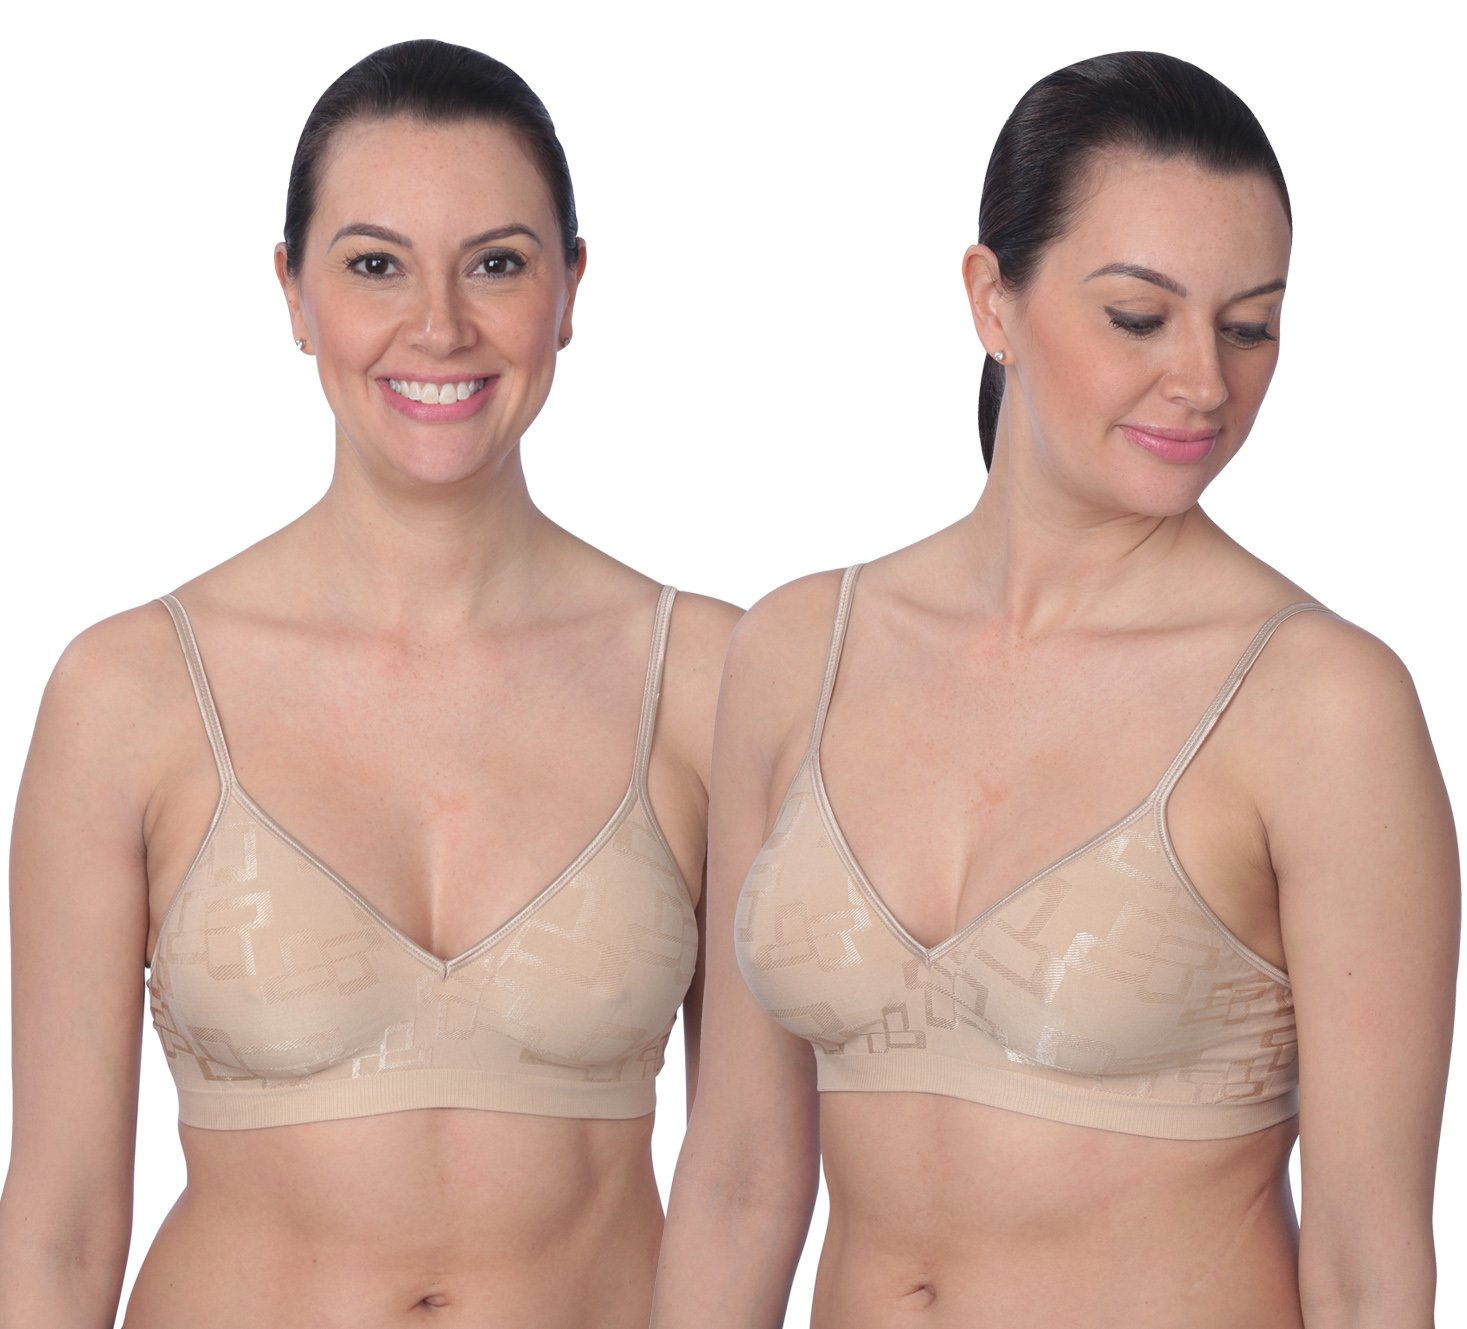 Hanes Comfortflex Fit Santoni Bra with Corsetry Detail-1 or 2 Pack, 2 Nude/ Small